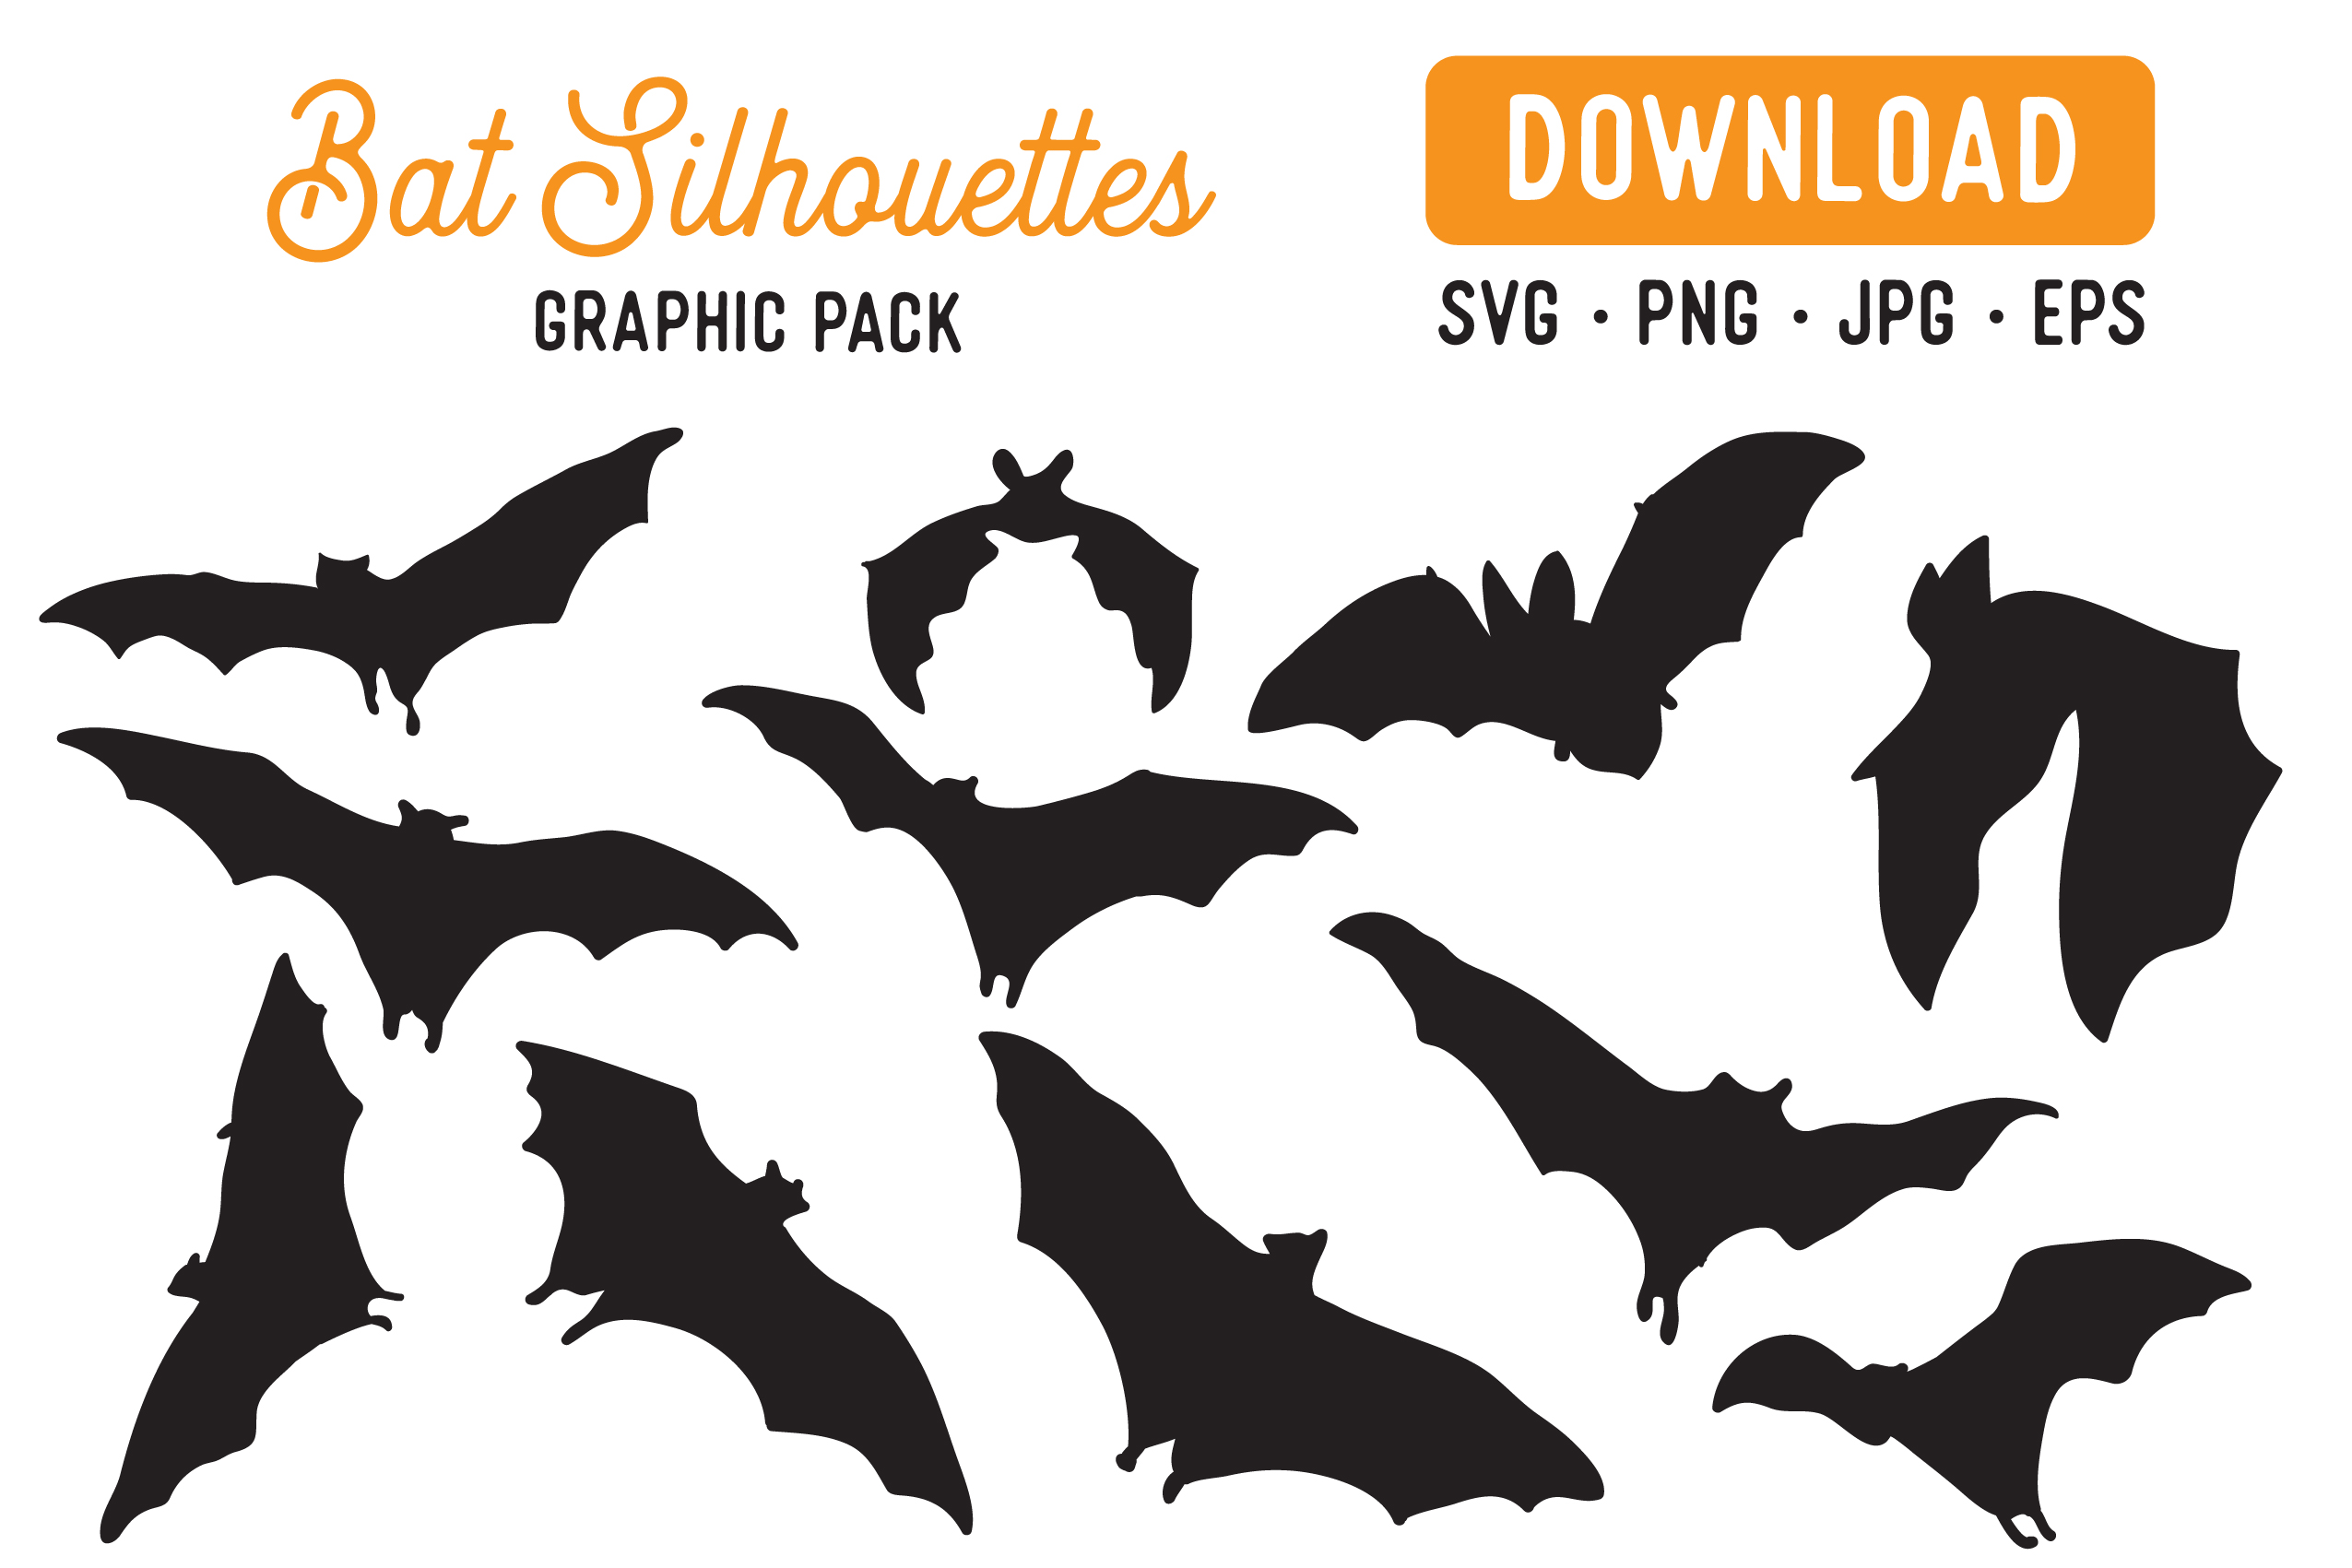 Download Free Bat Silhouettes Vector Clipart Pack Graphic By The Gradient Fox for Cricut Explore, Silhouette and other cutting machines.